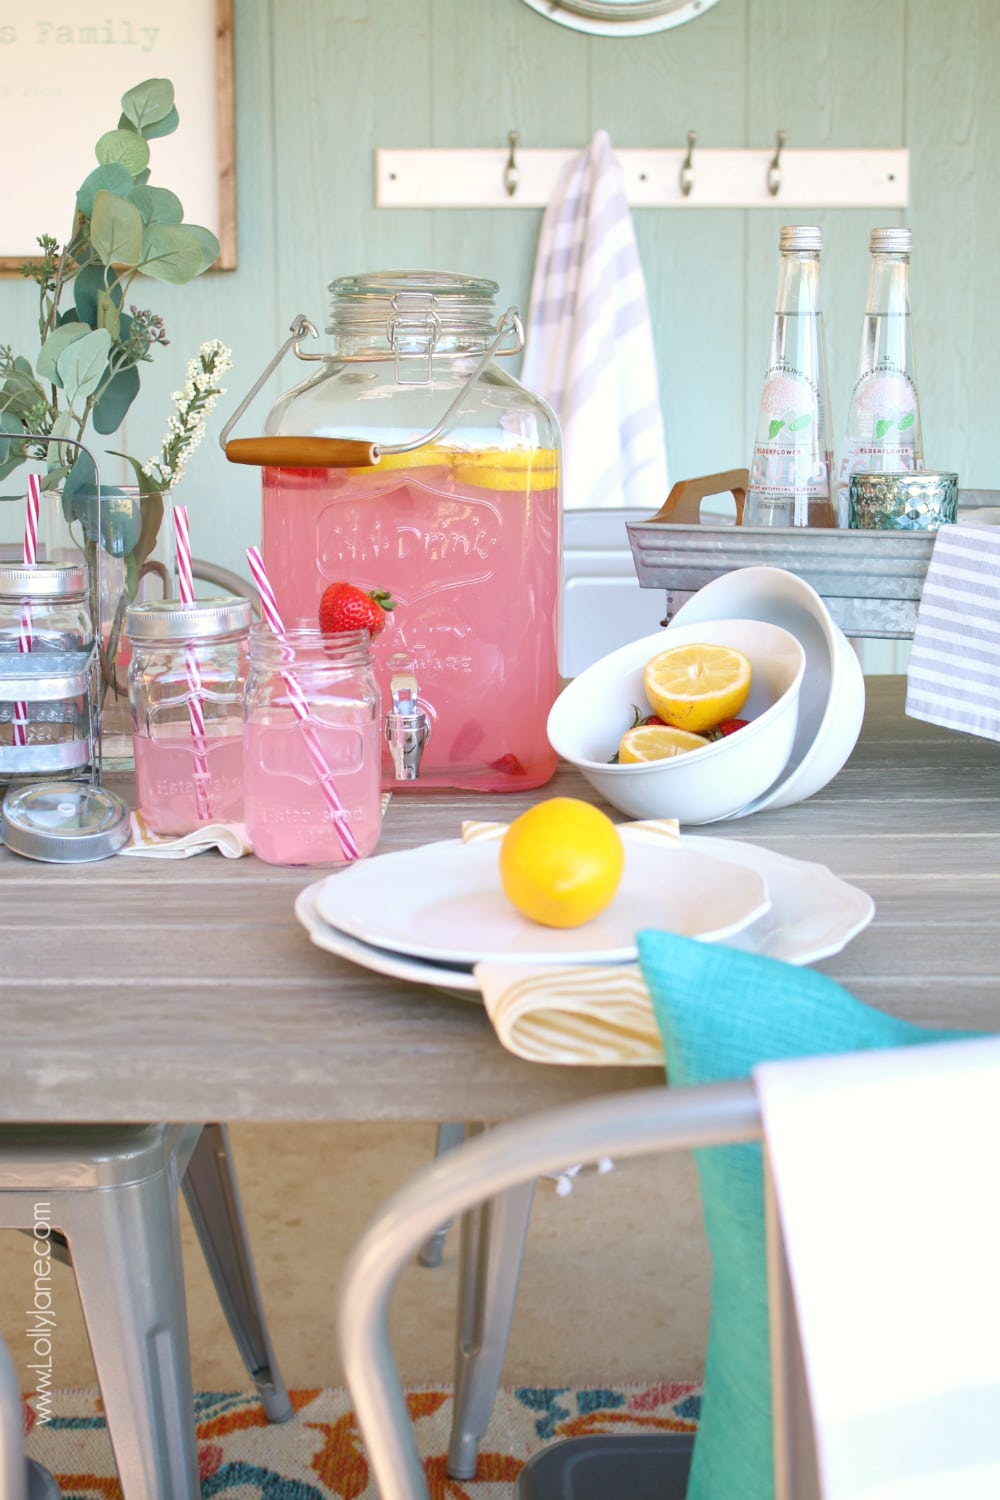 Porch Decorating Ideas for Summer - Easy Summer Entertaining tips + tricks! This setup is so simple to recreate if you have a few staple items, click through to see!